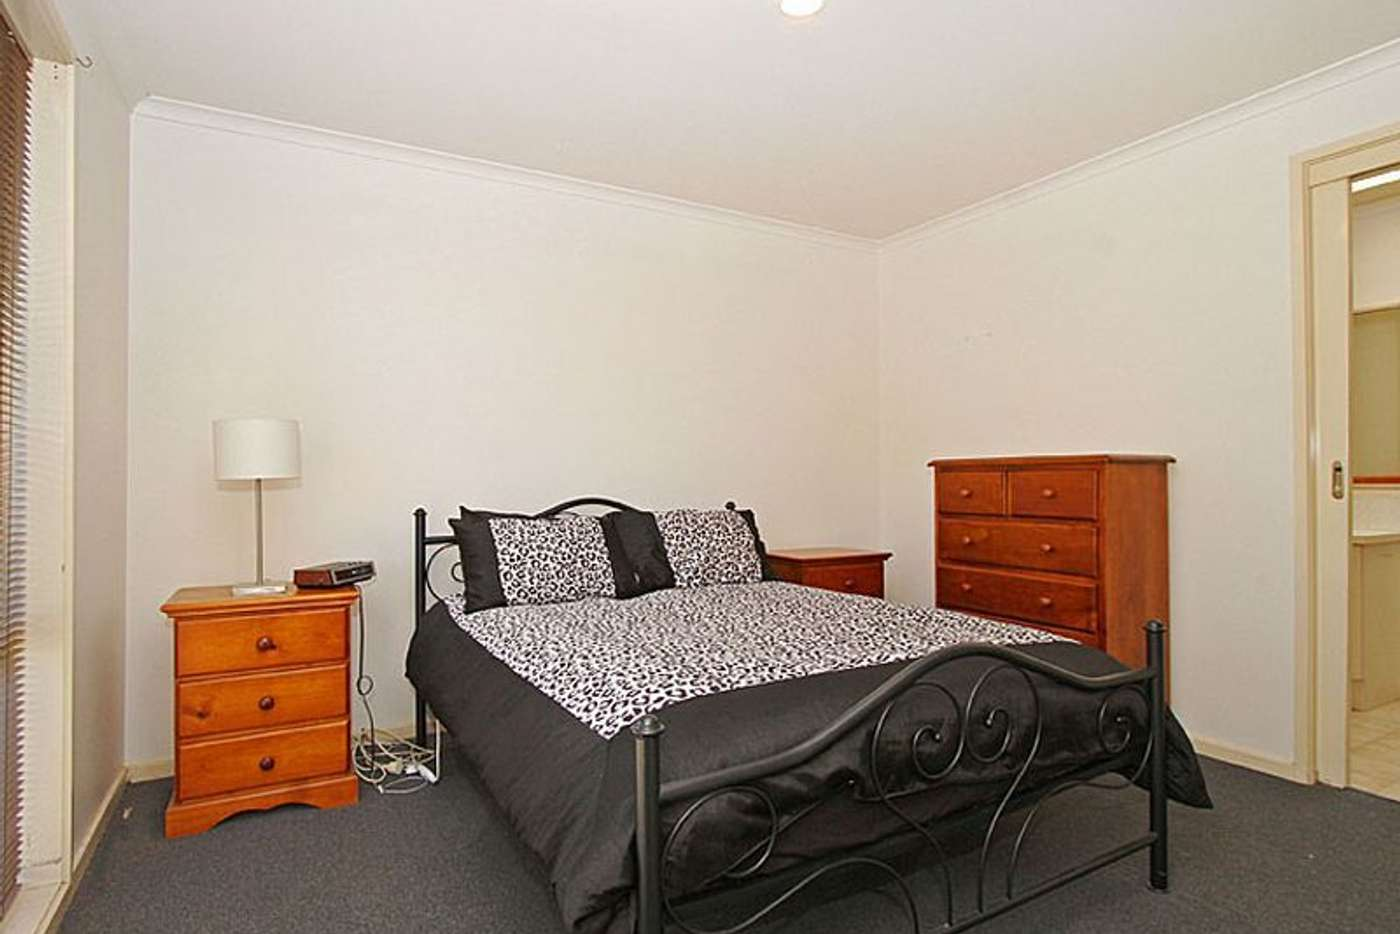 Sixth view of Homely house listing, 6 Small Court, Mill Park VIC 3082